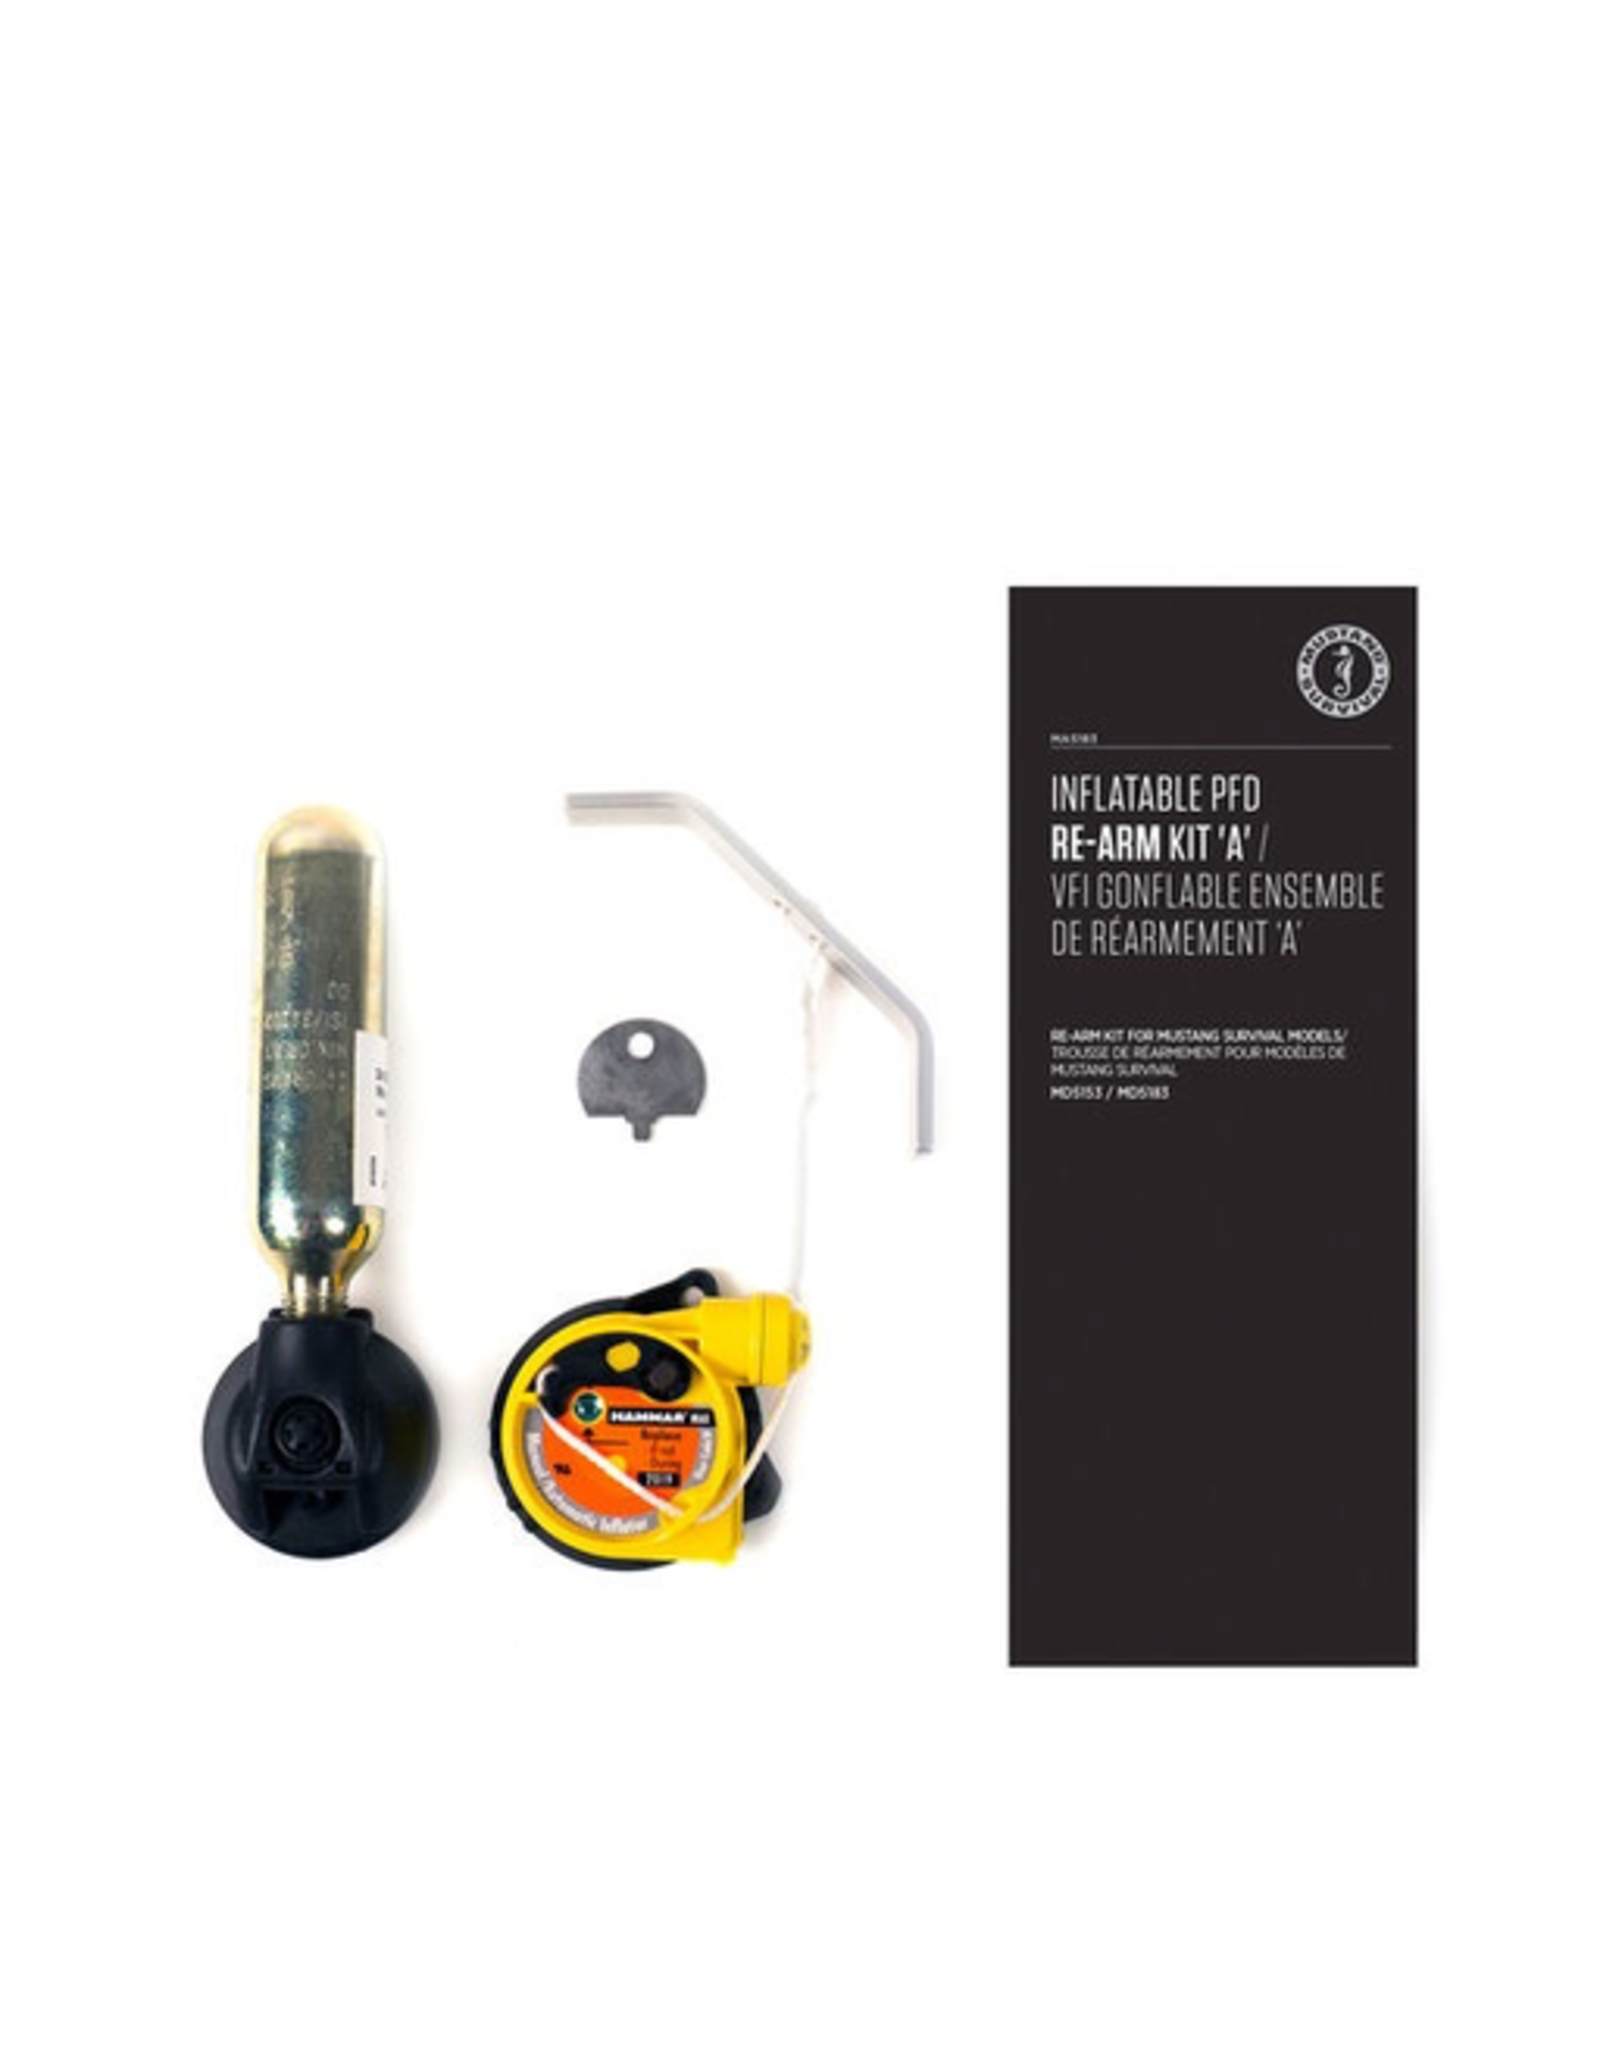 Mustang Survival Mustang Survival Auto-Hydrostatic 24G Re-Arm Kit A